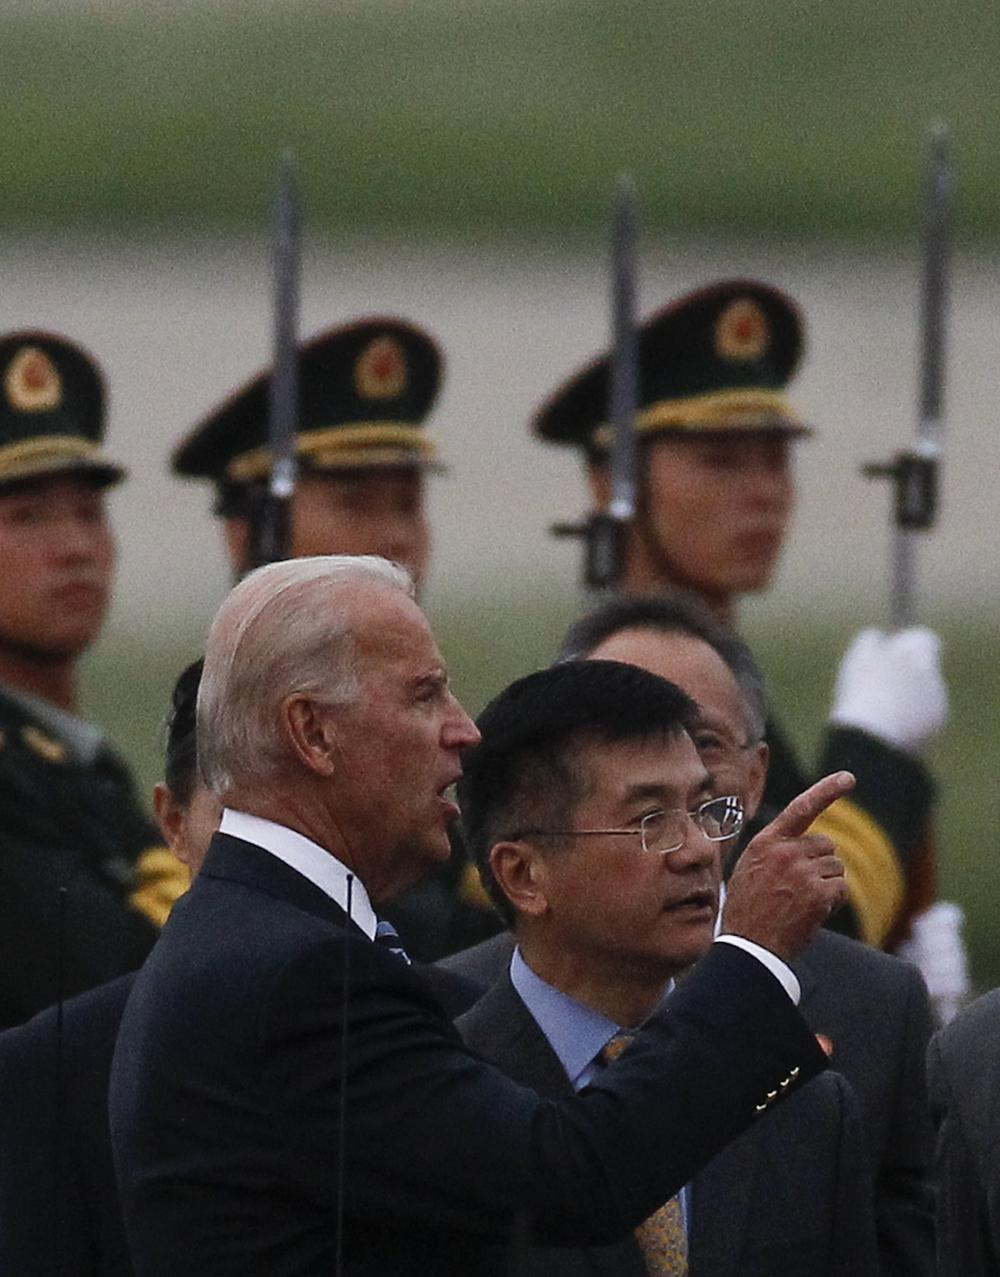 U.S. Vice President Joseph Biden, left, talks with U.S. Ambassador to China Gary Locke, right, after Biden's arrival in Beijing, China, Wednesday. (AP)